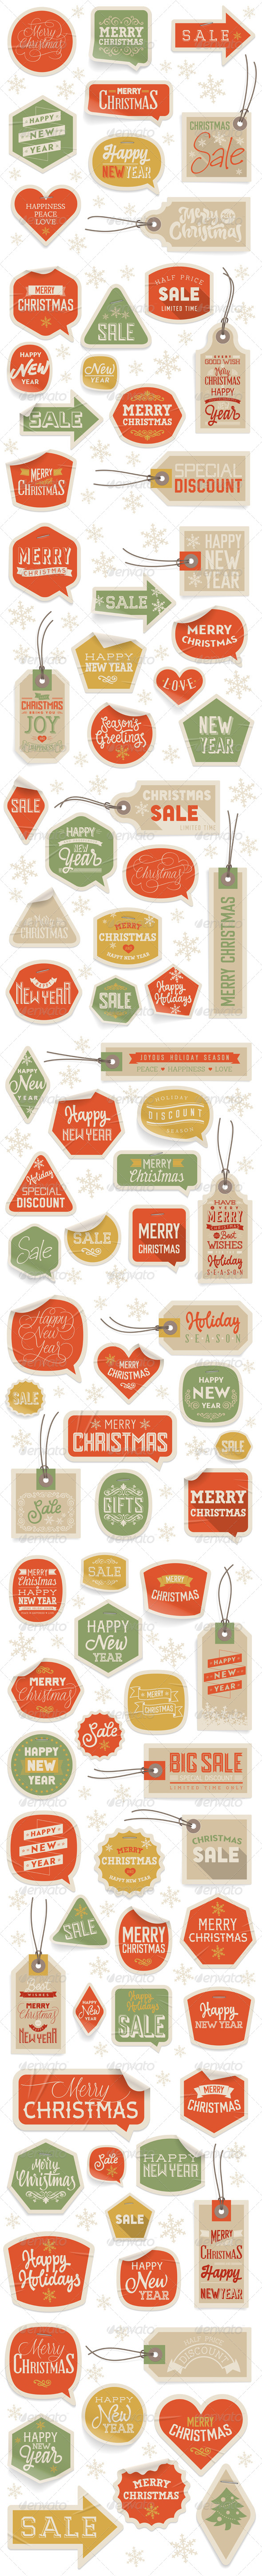 GraphicRiver Stickers and Labels for Christmas and New Year 6121317